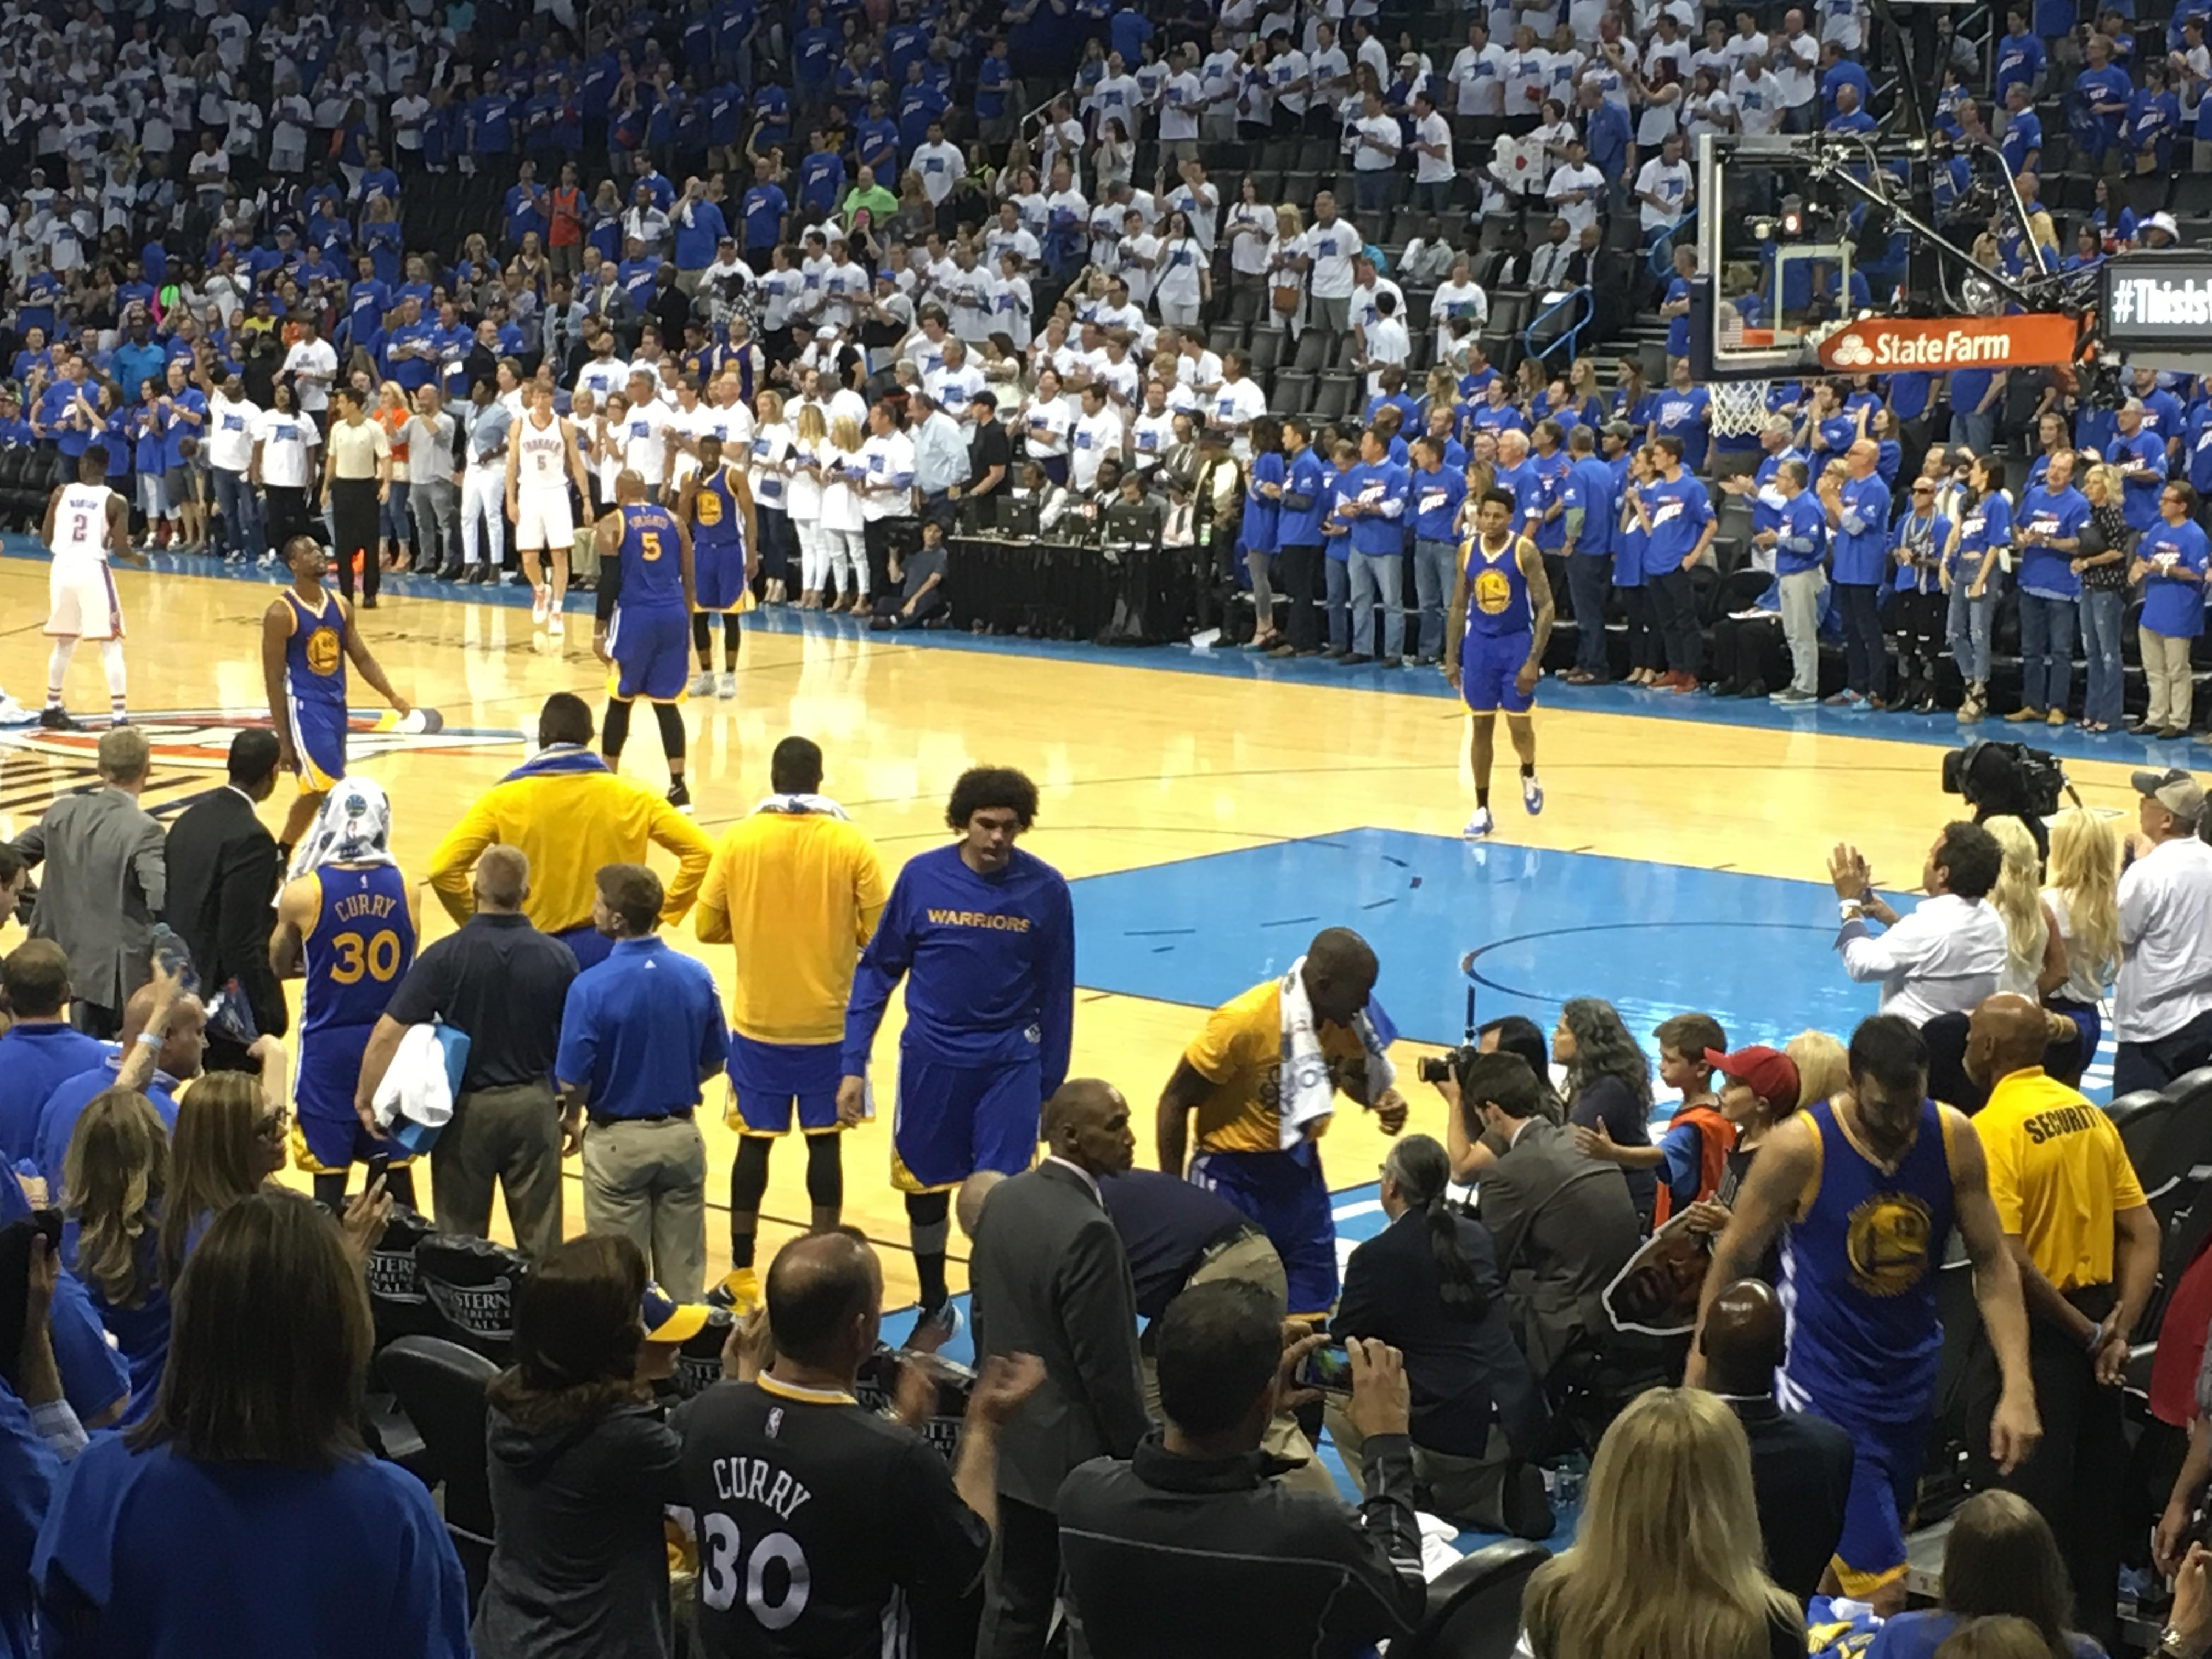 Chesapeake Energy Arena Section 113 Row G Seat 5